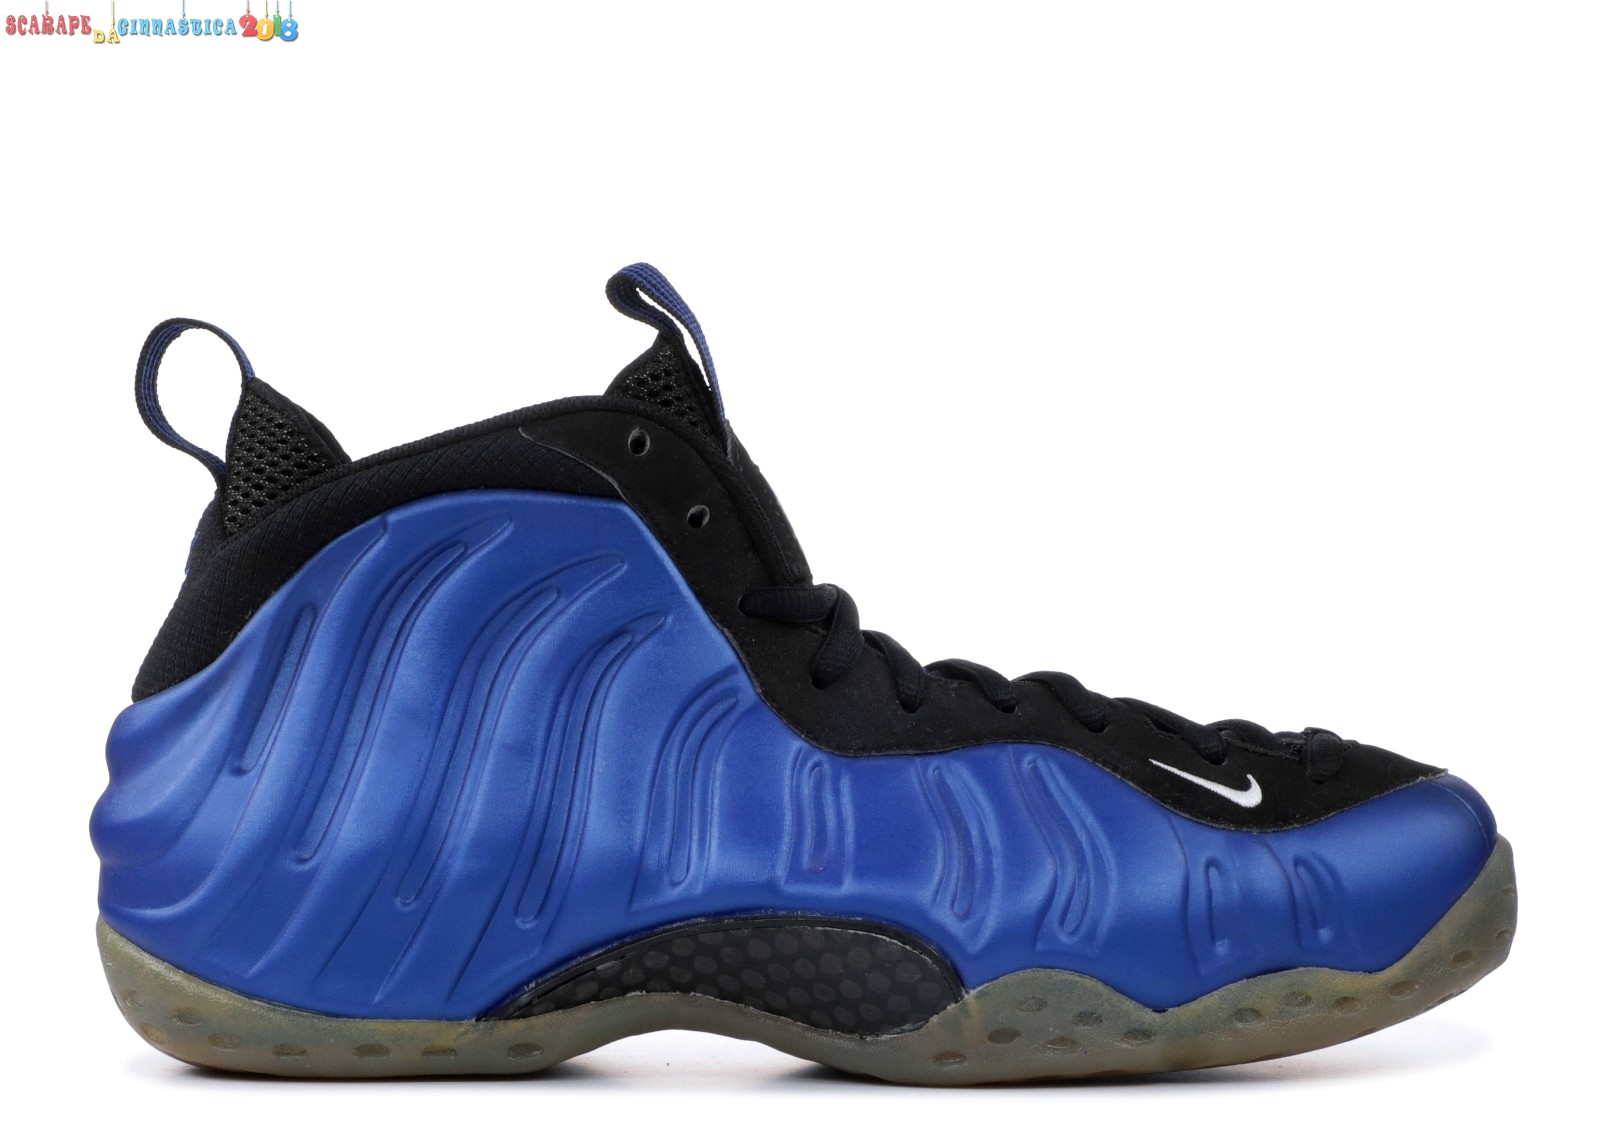 Replica Nike Air Foamposite One Blu Nero Bianca (830017-511) - Uomo Online